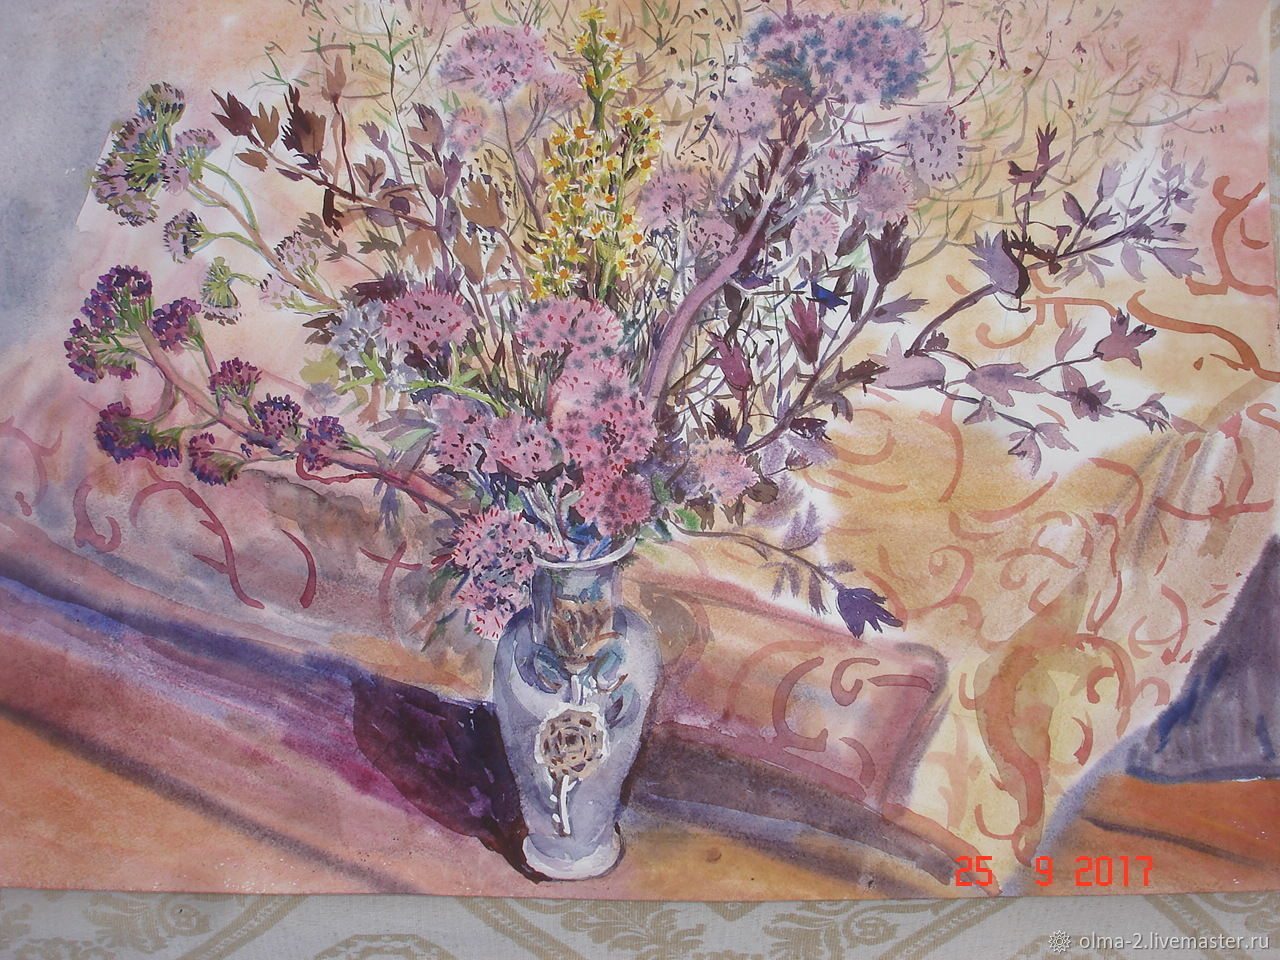 Forest flowers in a vase, Pictures, Tyumen,  Фото №1